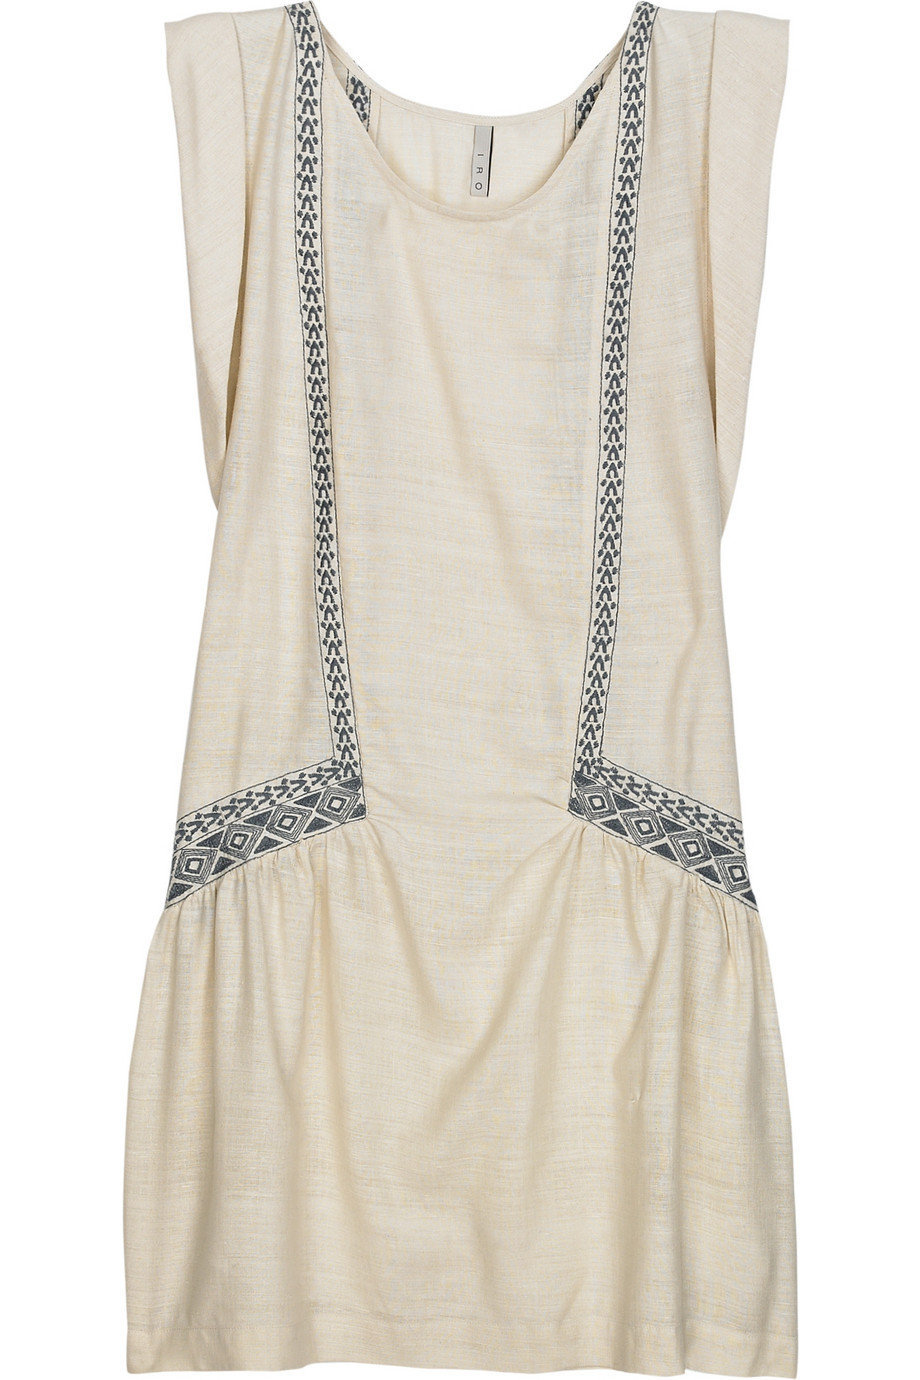 IRO raveh embroidered silk dress